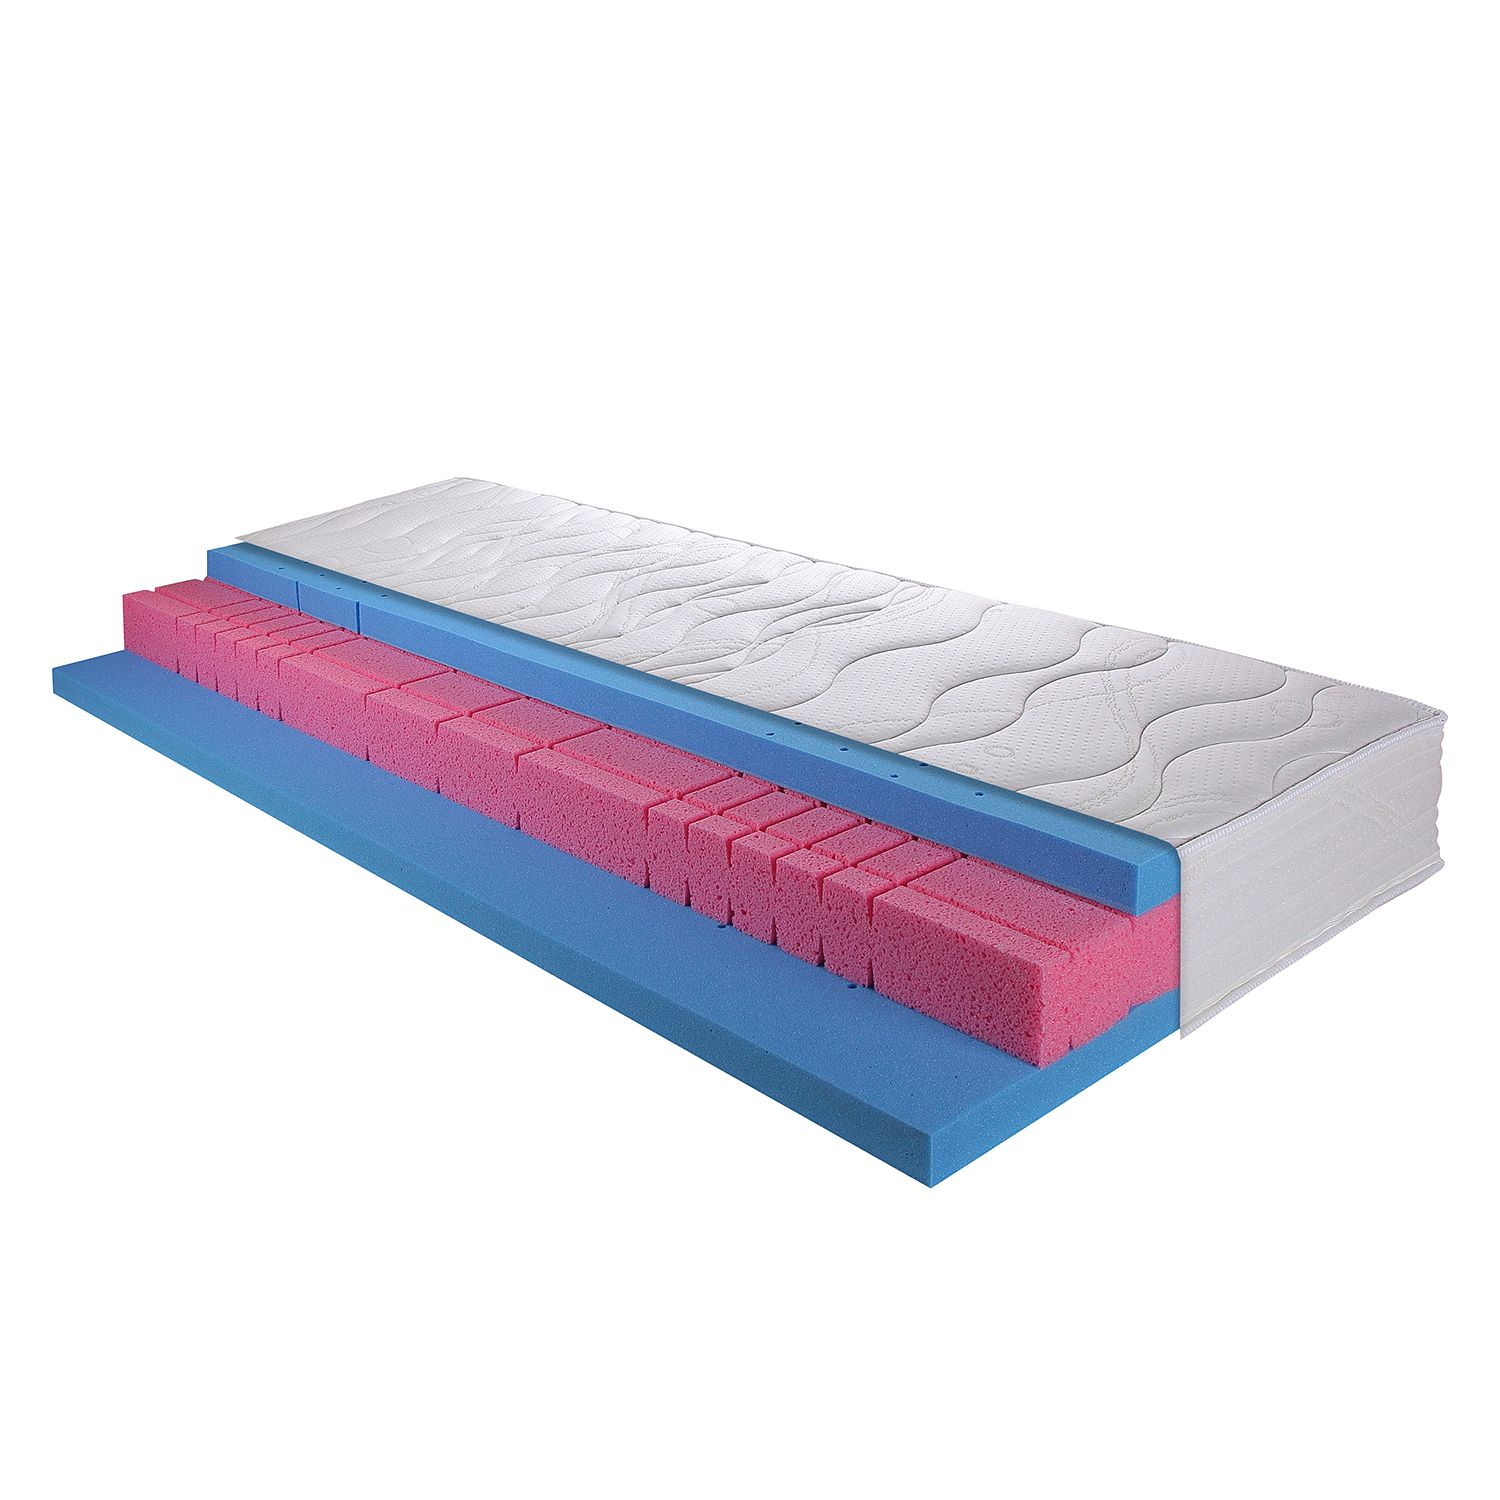 Matelas en mousse froide Ortho Air Gi - 200 x 200cm, Breckle